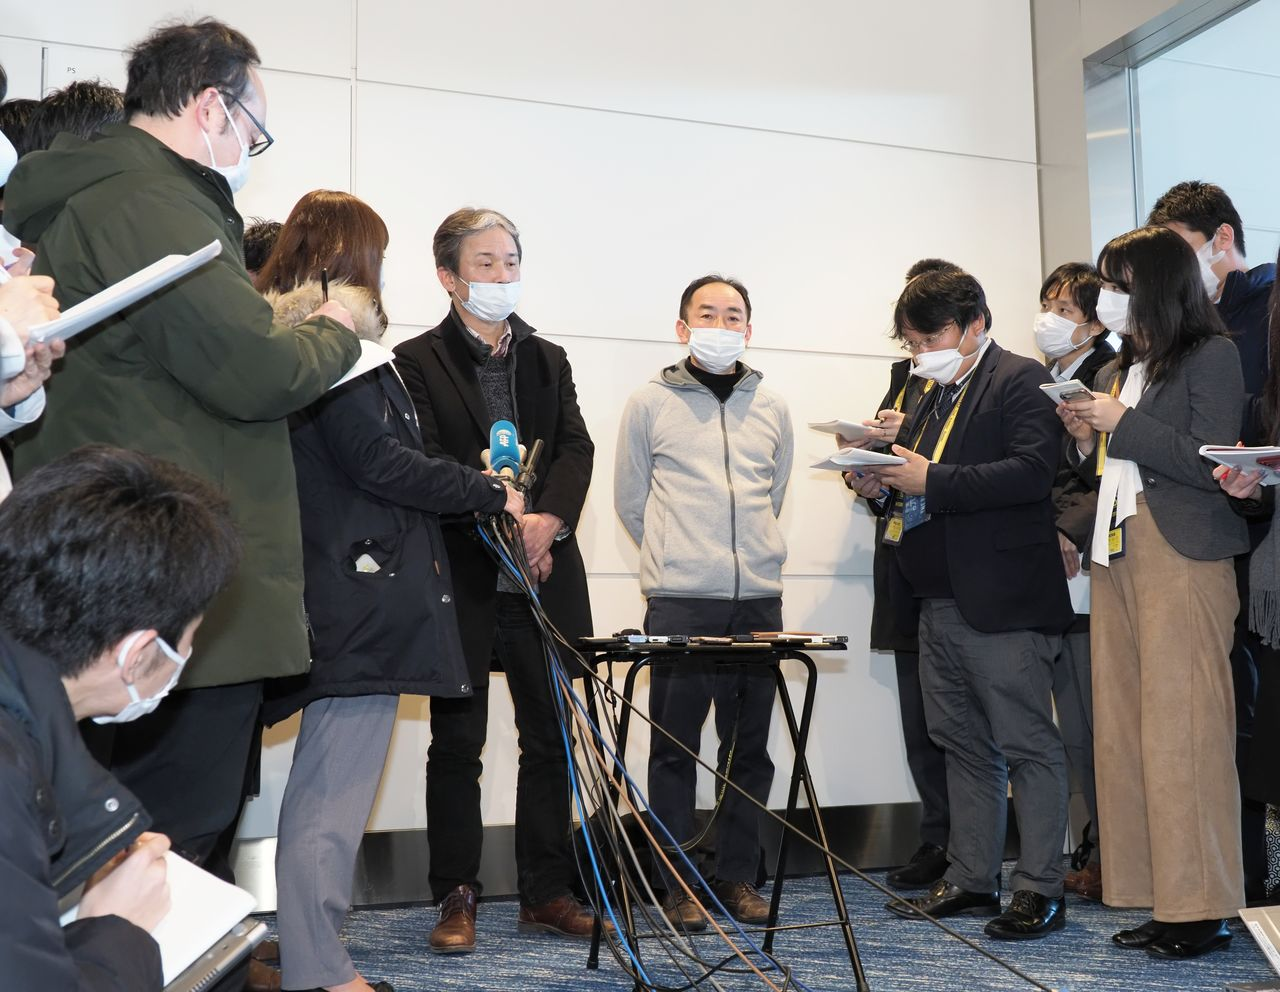 Japanese citizens flown home from Wuhan talk to members of the press at Haneda Airport on January 29, 2020. (© Jiji)